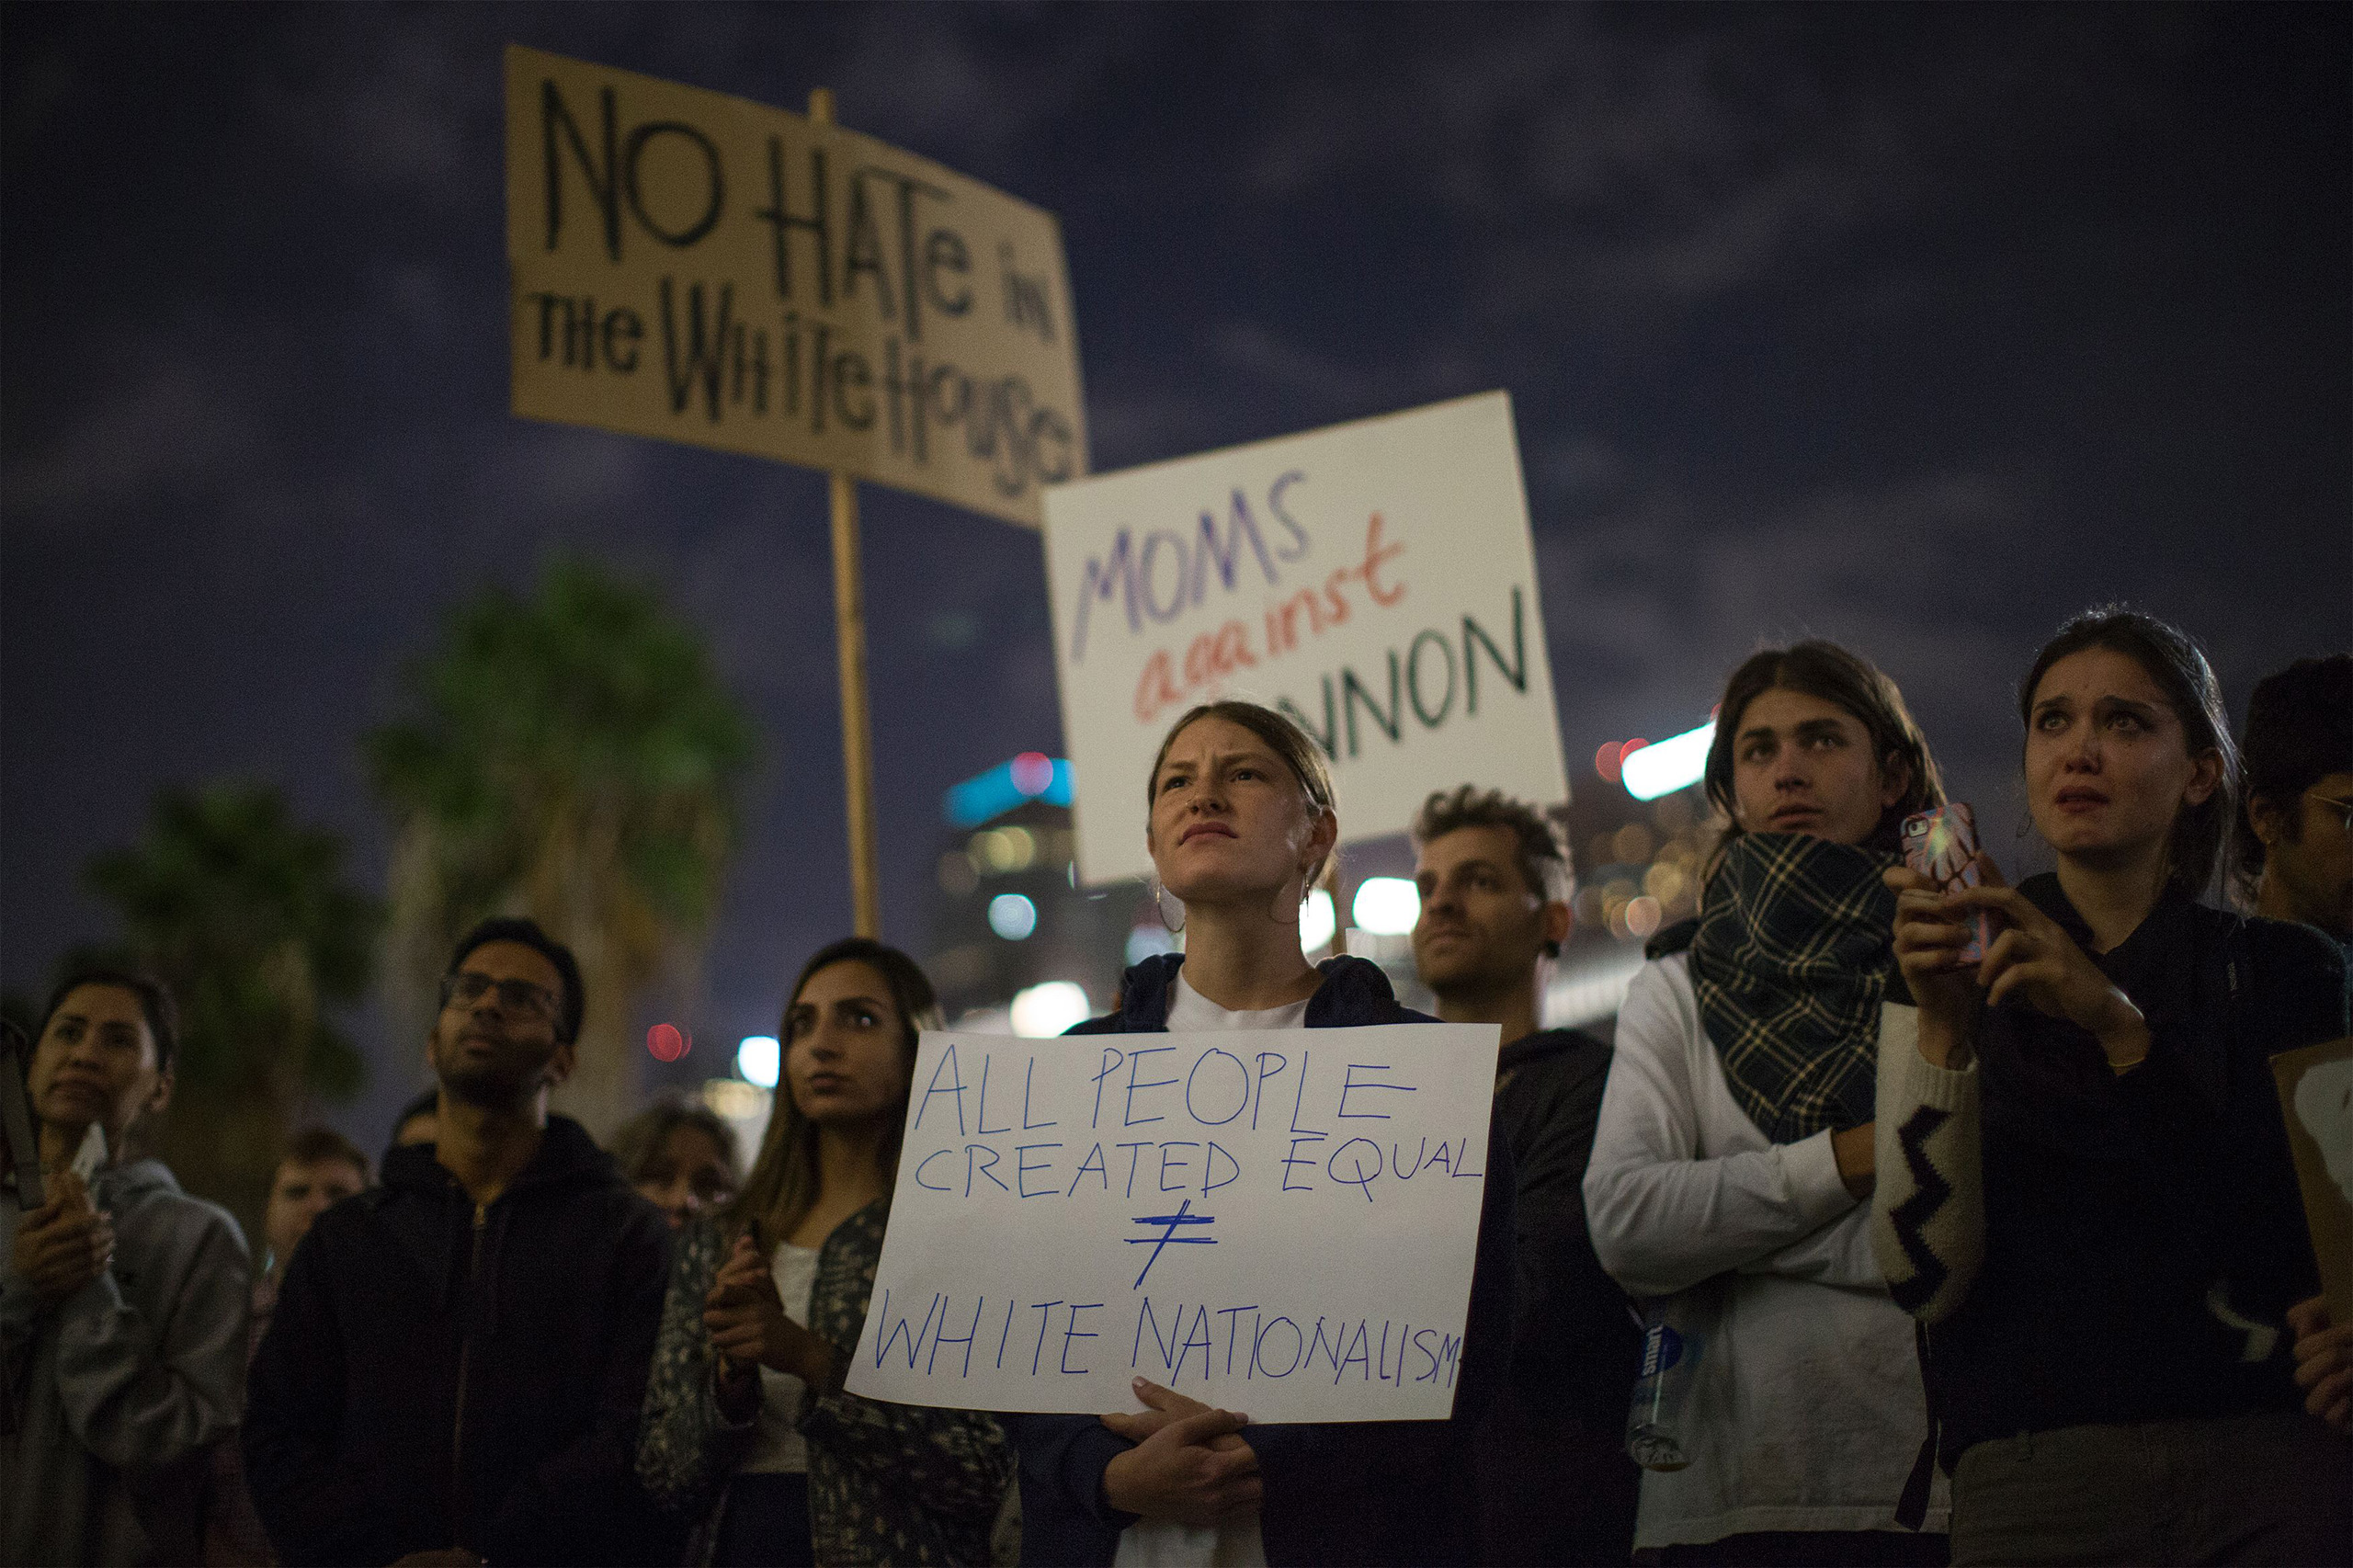 People protest the appointment of  Steve Bannon, to be chief strategist of the White House by Donald Trump on Nov. 16, near City Hall in Los Angeles.